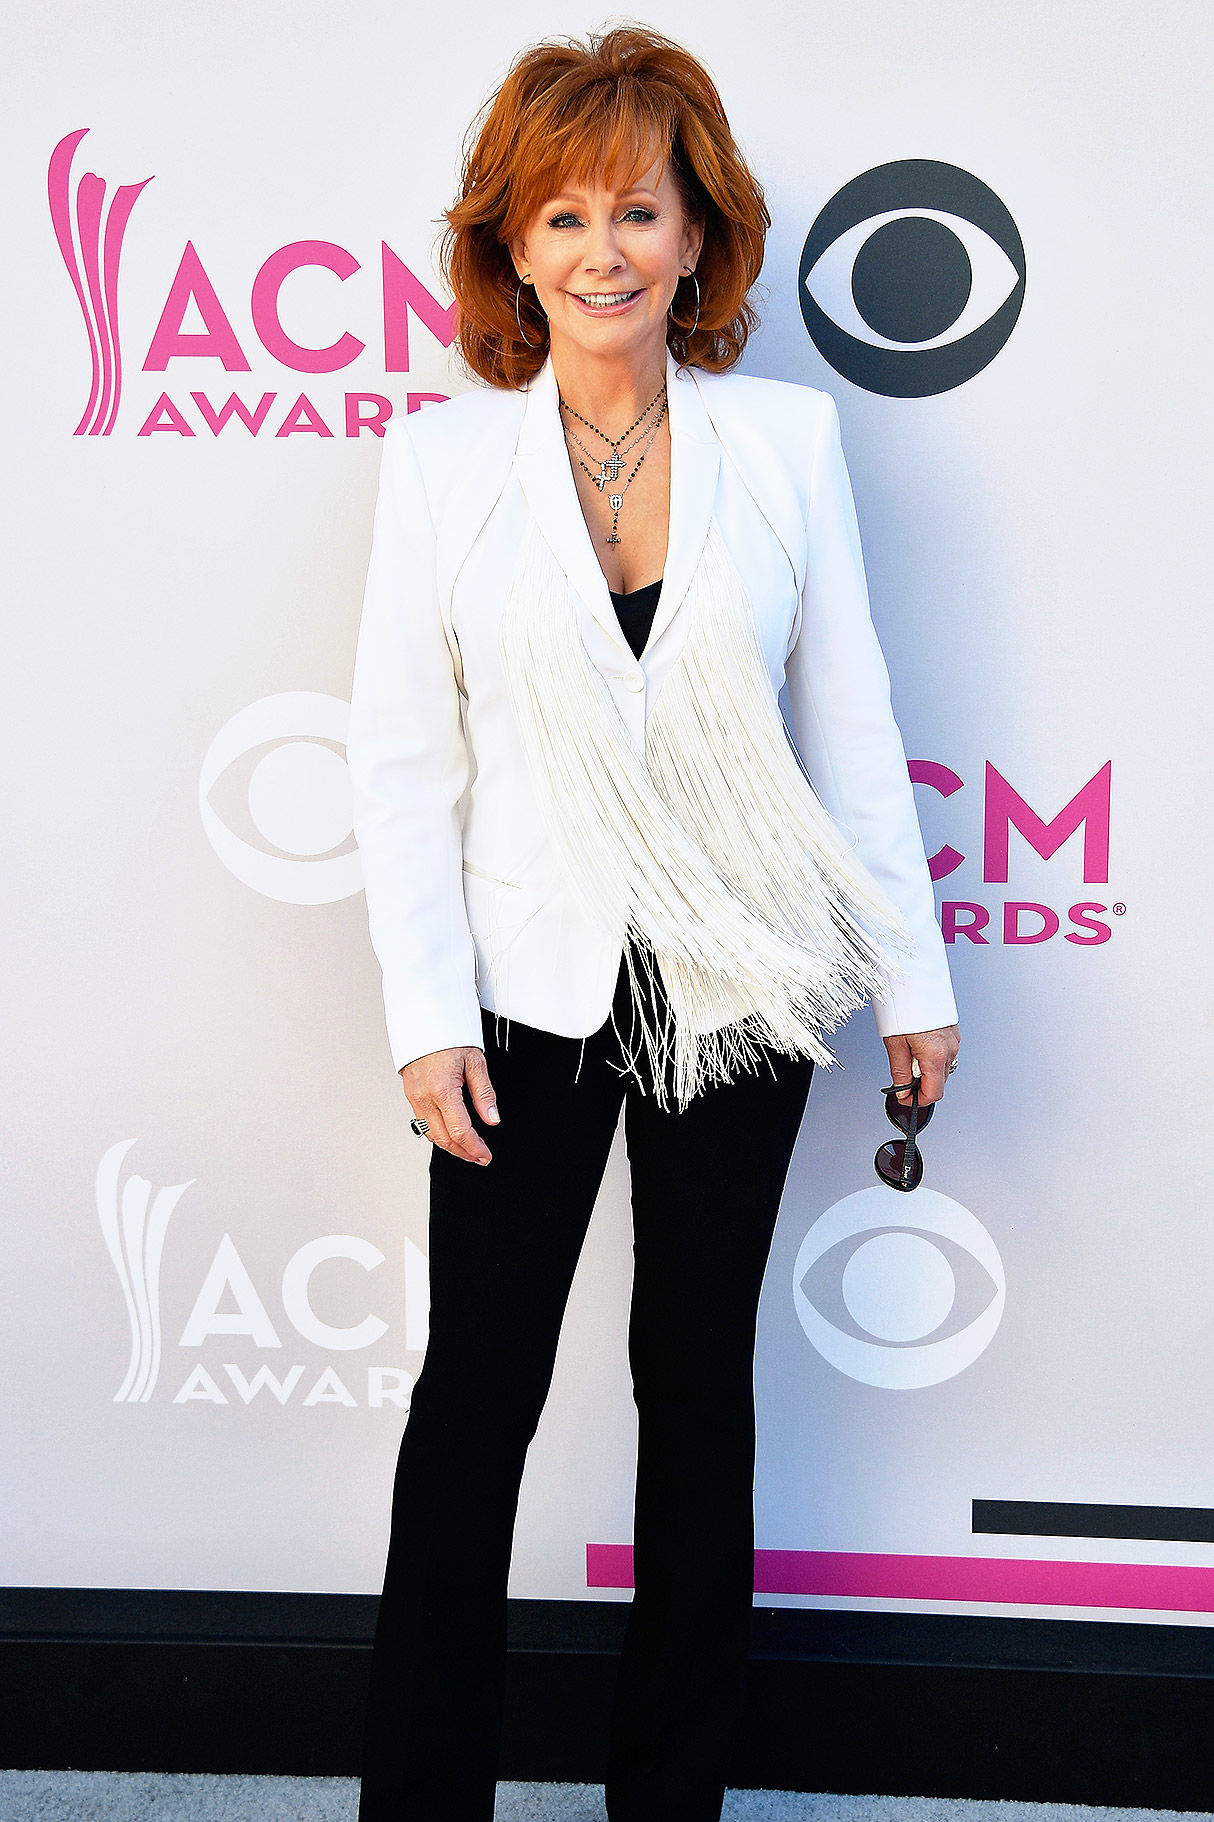 Reba McEntire Shares Hilarious 'Hipster' Throwback Photo on Twitter